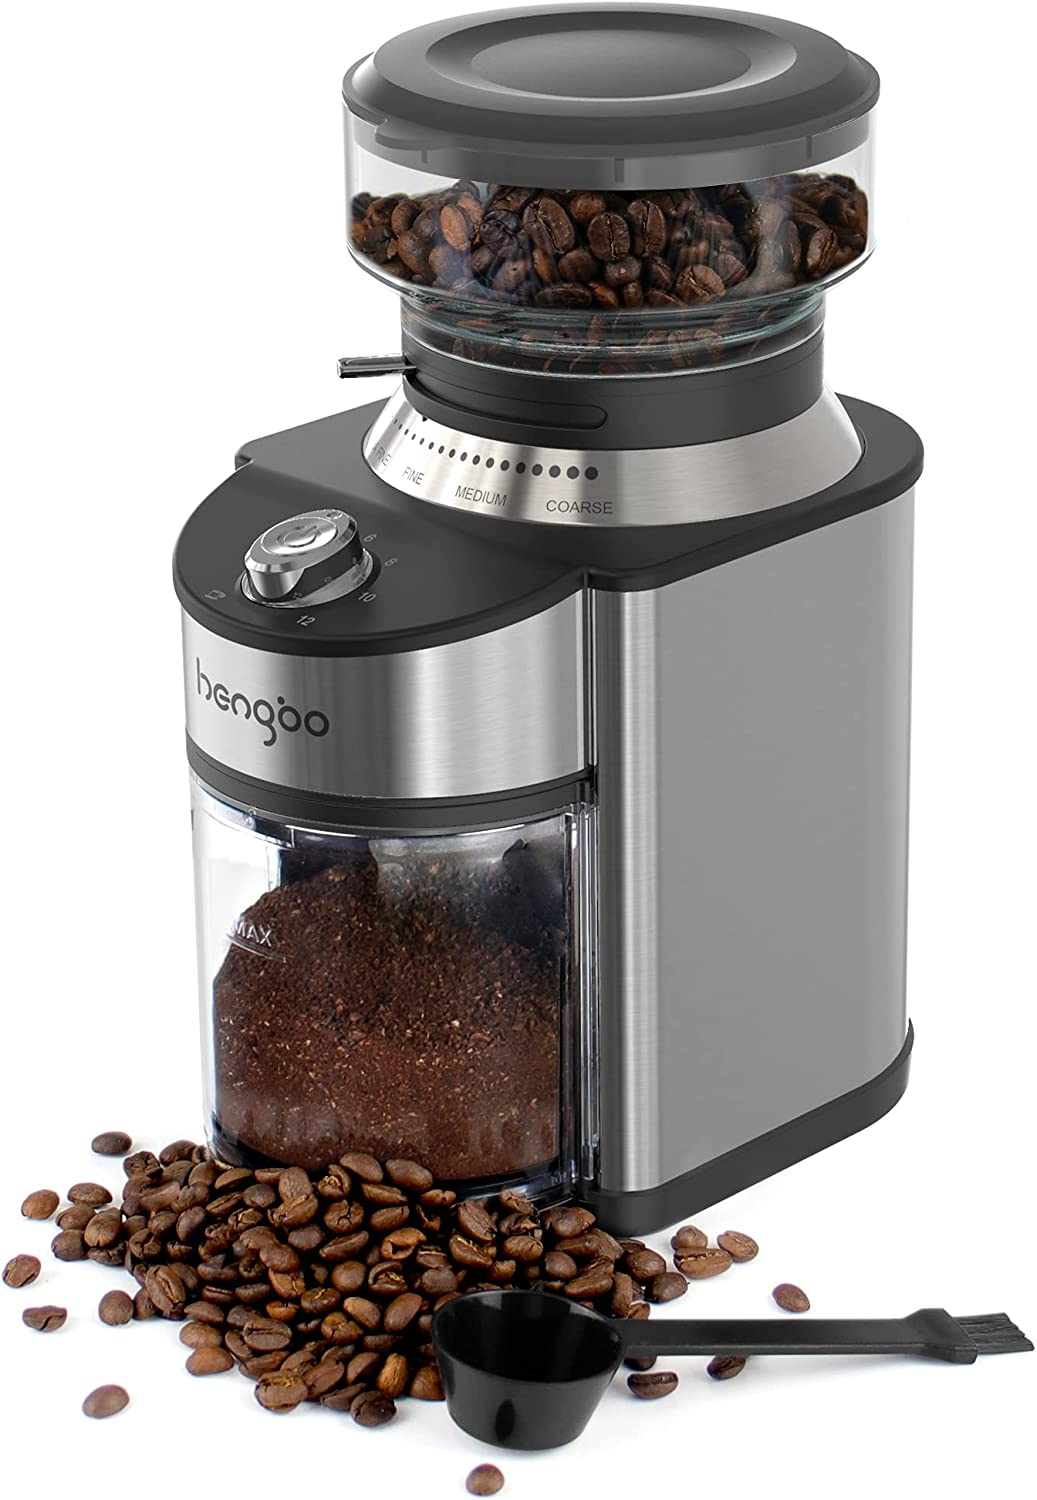 Burr Coffee Brand new Grinder Hengbo Adjustable Mil Electric Conical specialty shop